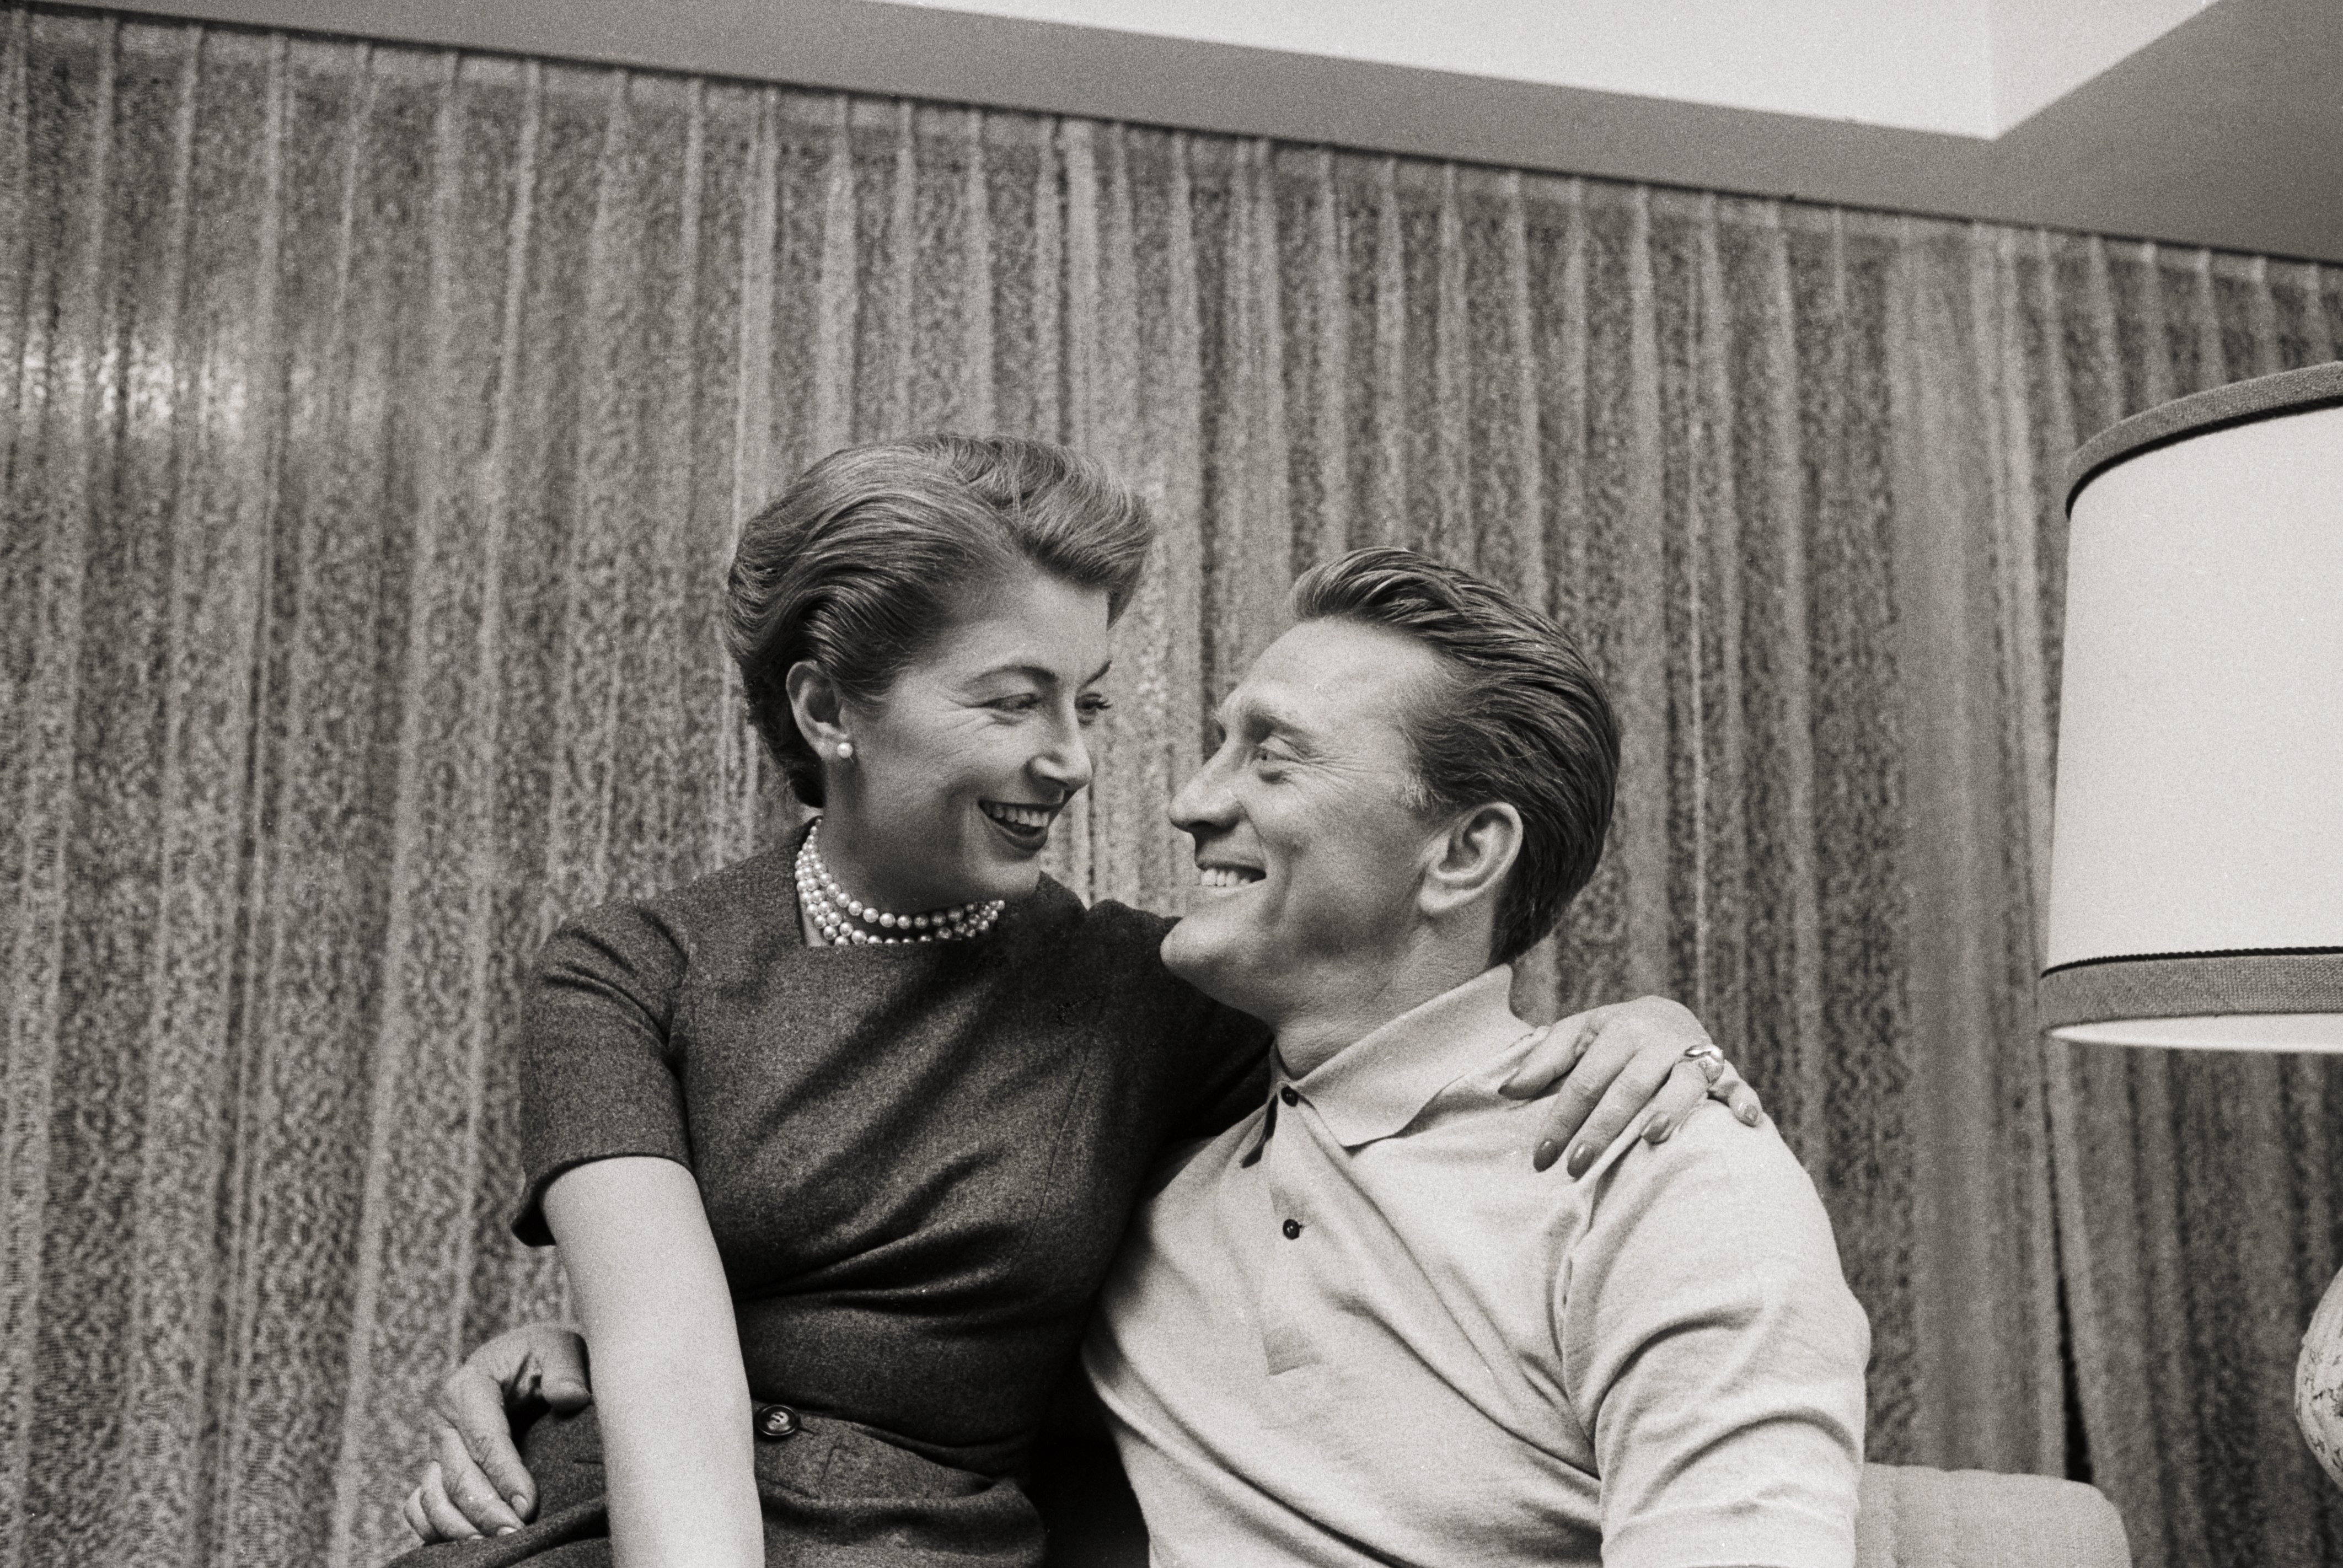 Kirk Douglas and his spouse Anne Douglas gaze at each other in a portrait photo. | Photo: Getty Images